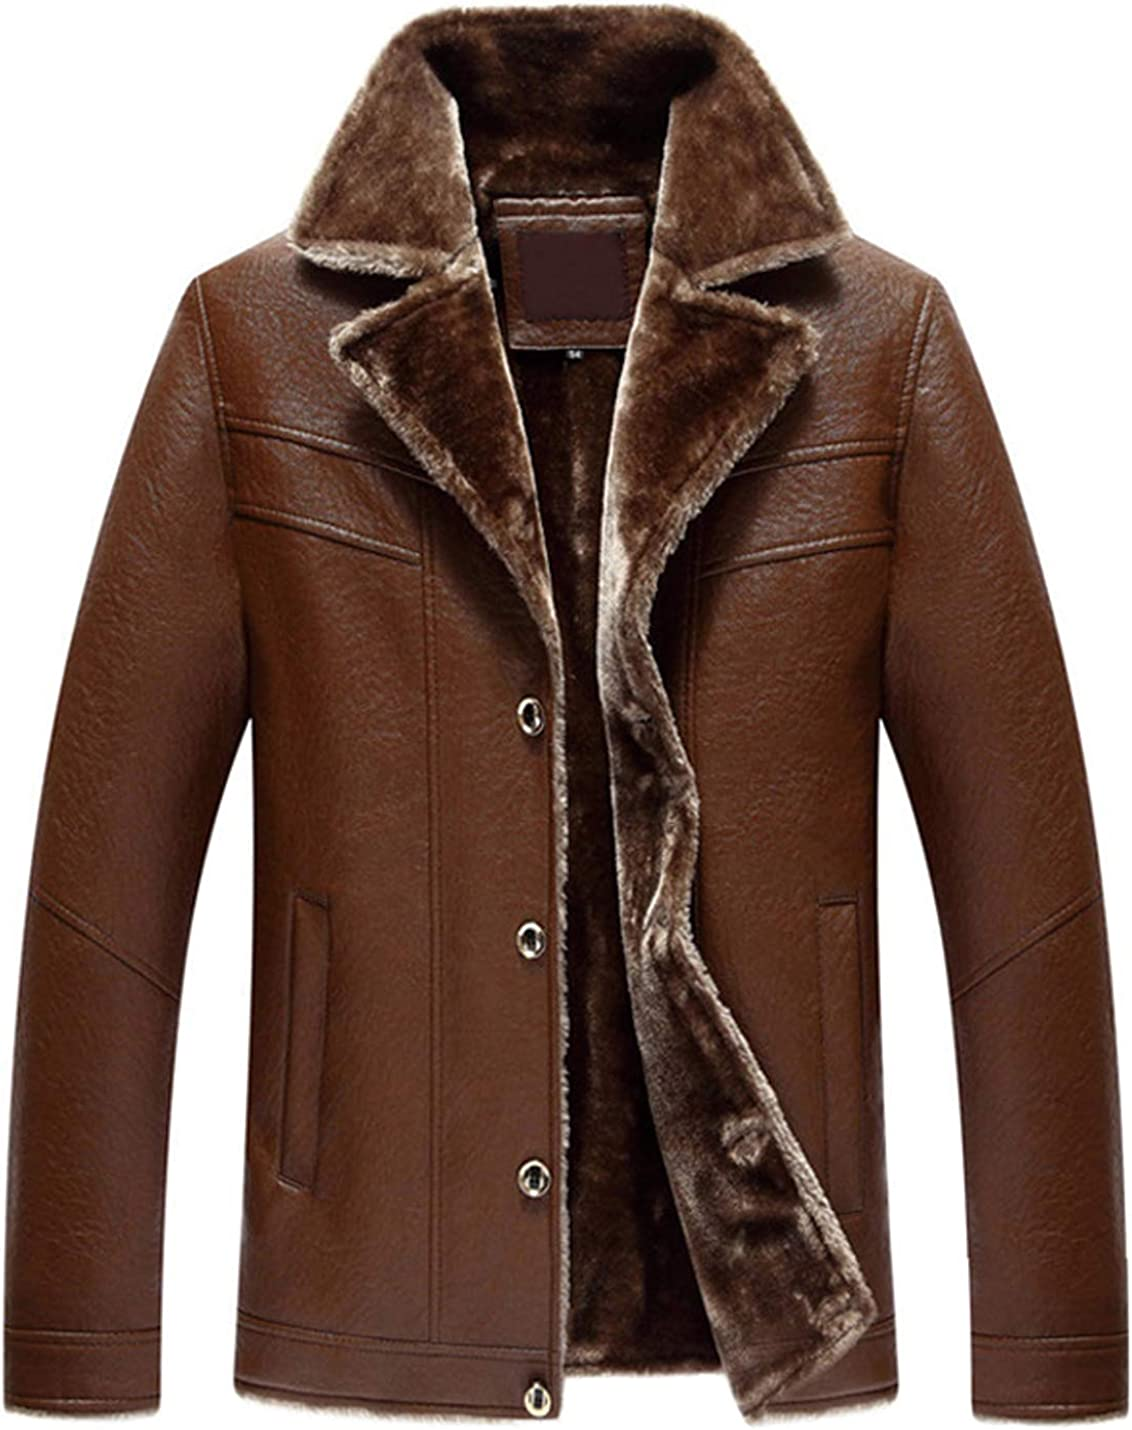 Jenkoon Mens Notched Lapel Leather Jacket Winter Warm Thick Fur Lined Coat Outwear